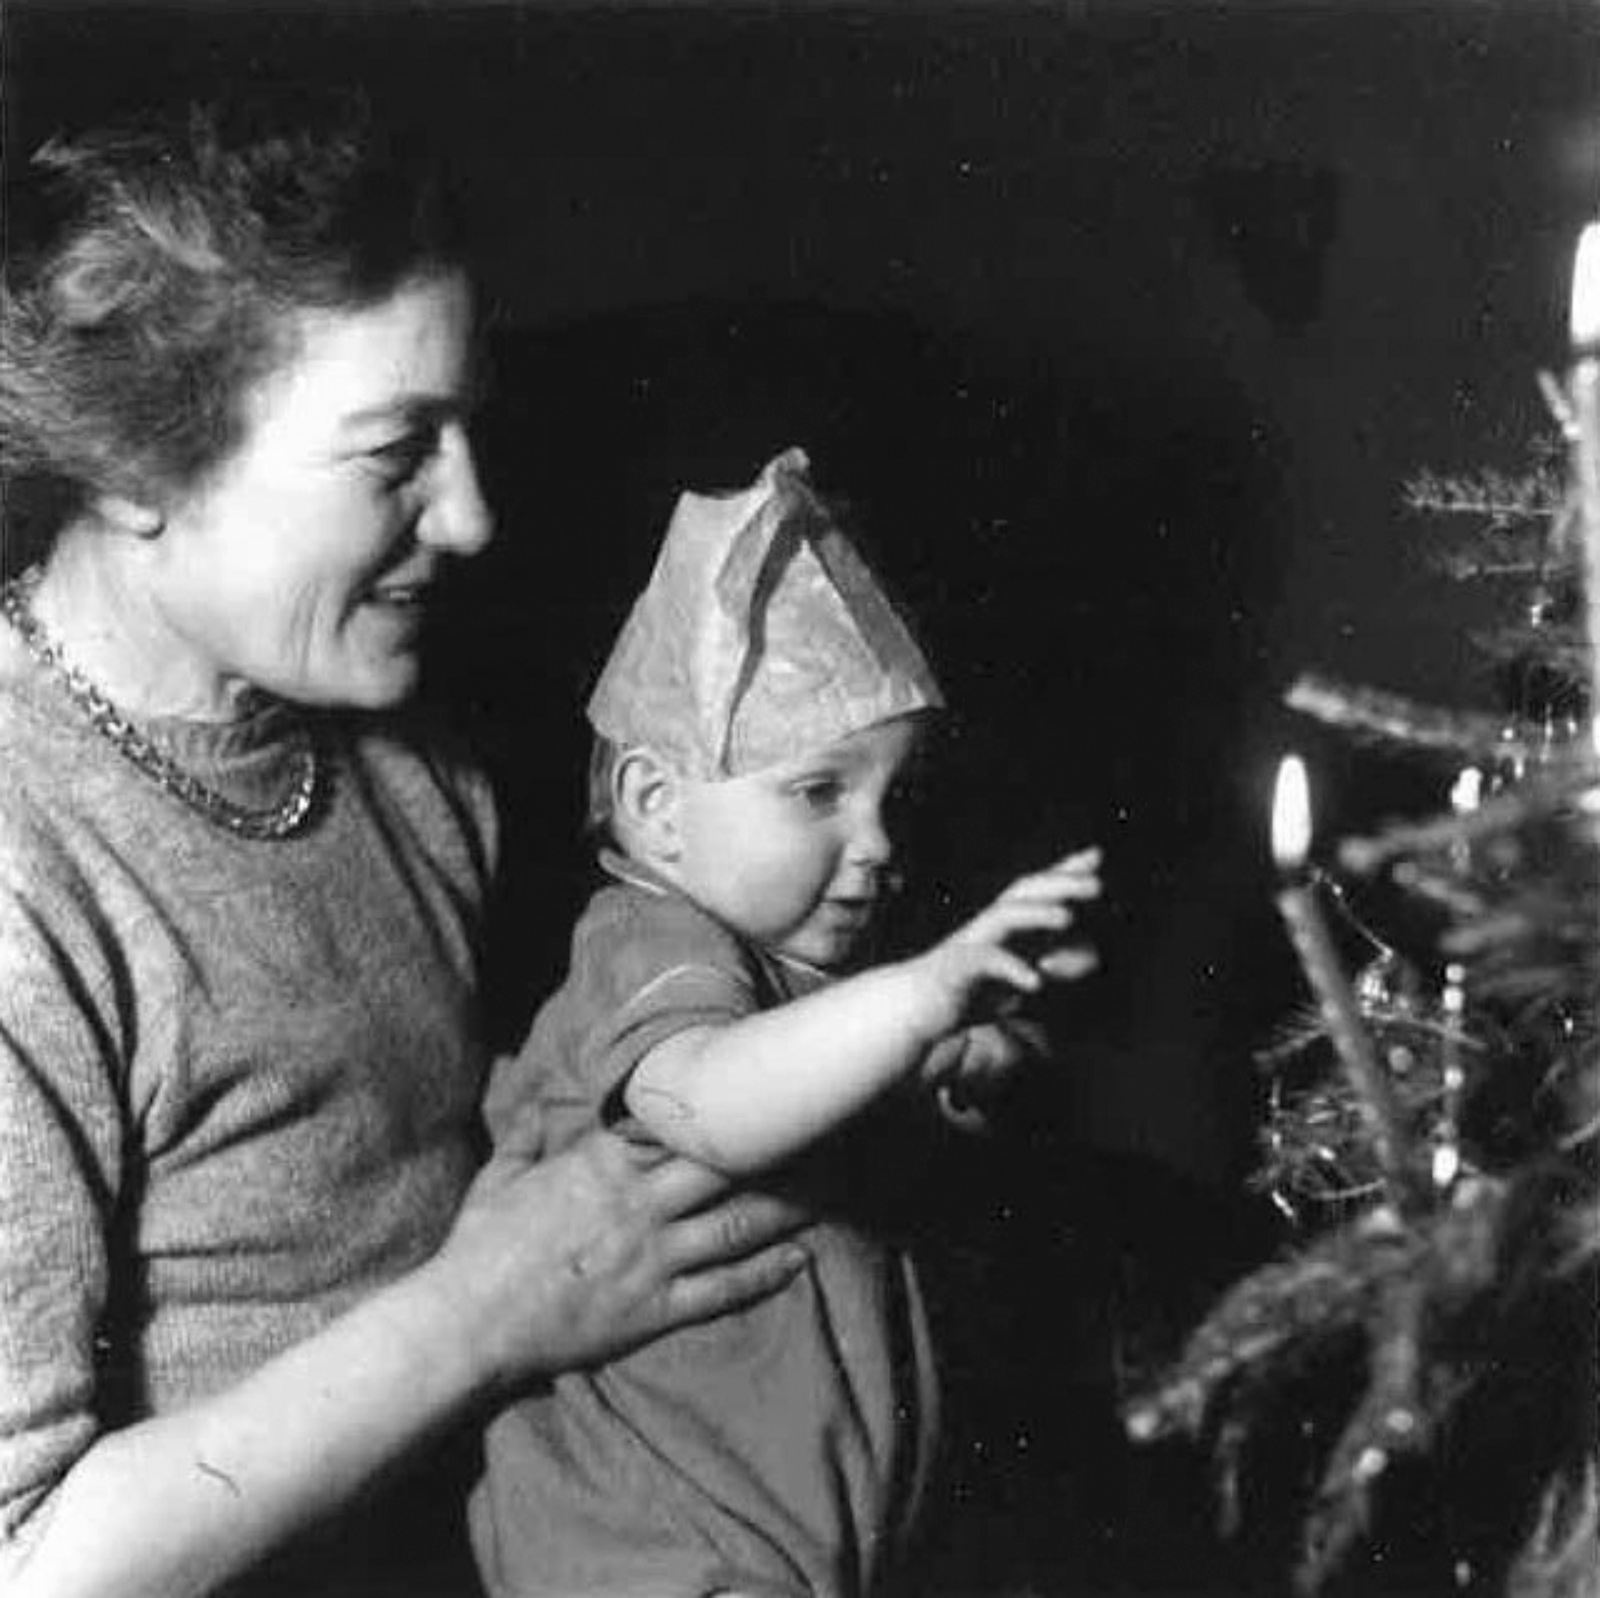 Ian Buruma with his grandmother Win Schlesinger at her house in Berkshire, 1953